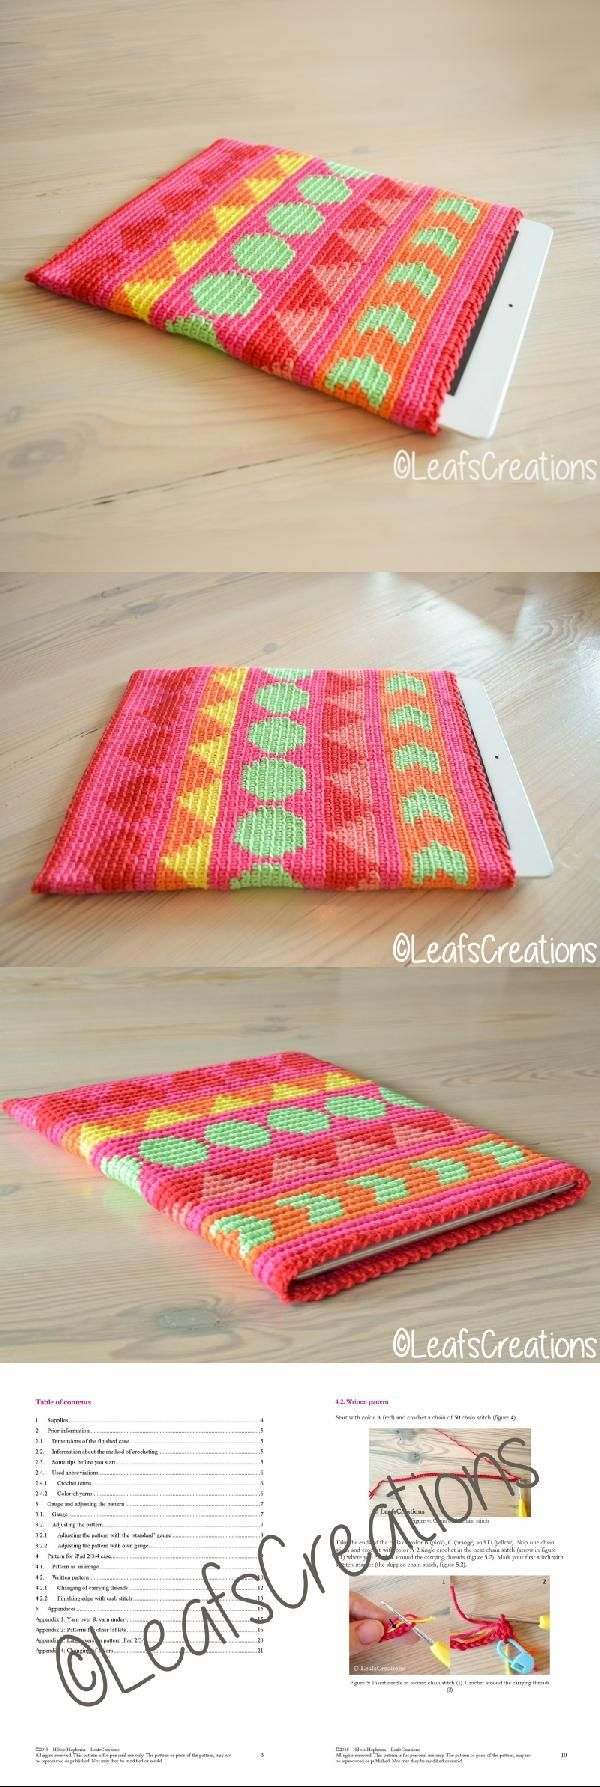 Tapestry crochet pattern iPad tablet case/sleeve crochet pattern